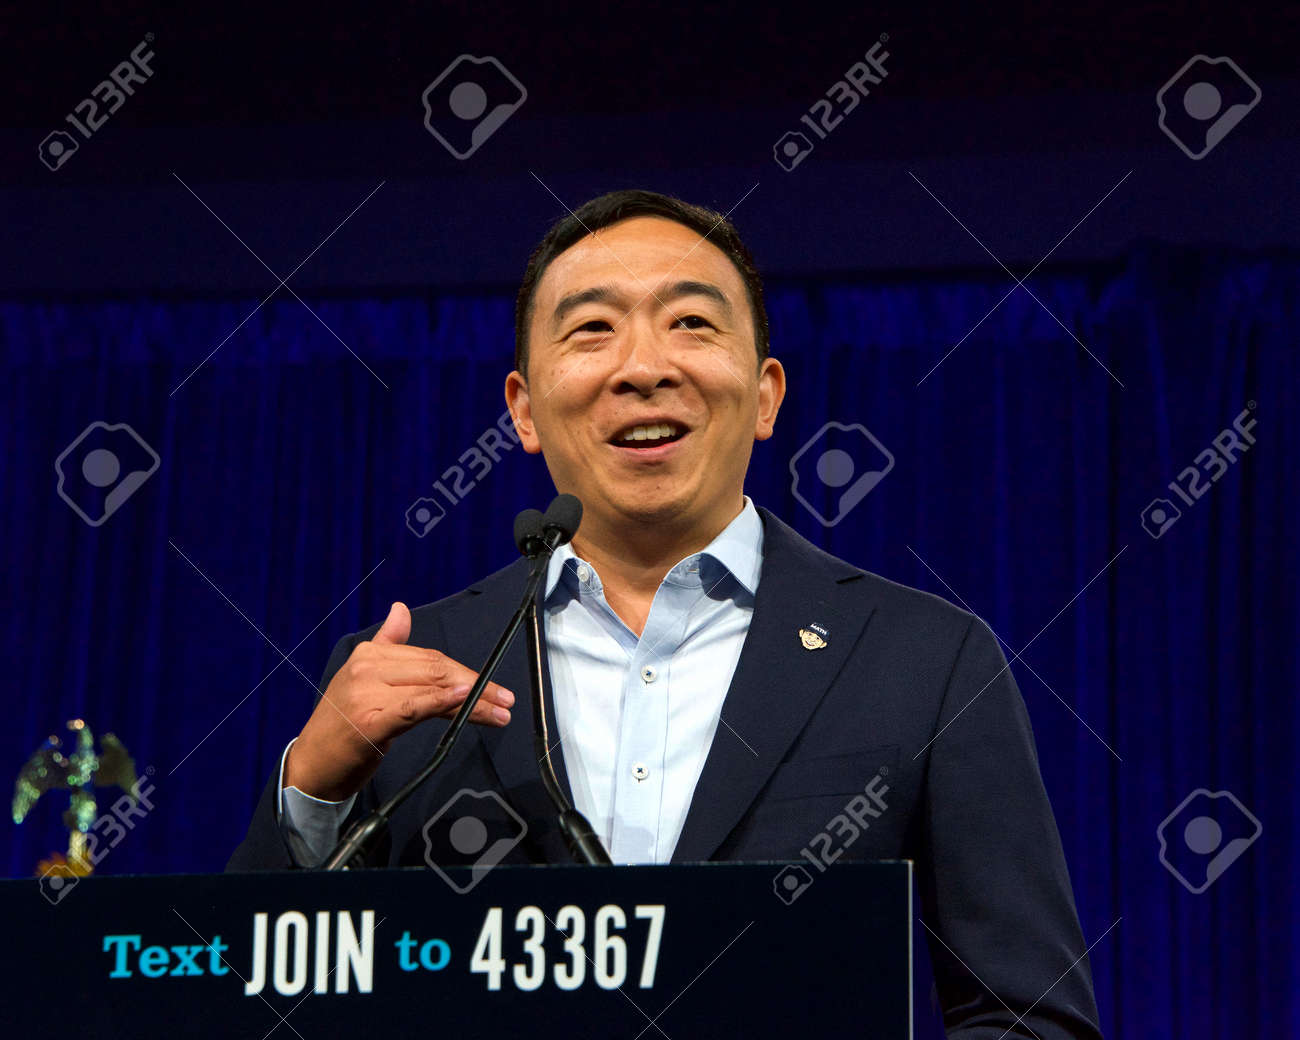 San Francisco, CA - August 23, 2019: Presidential candidate Andrew